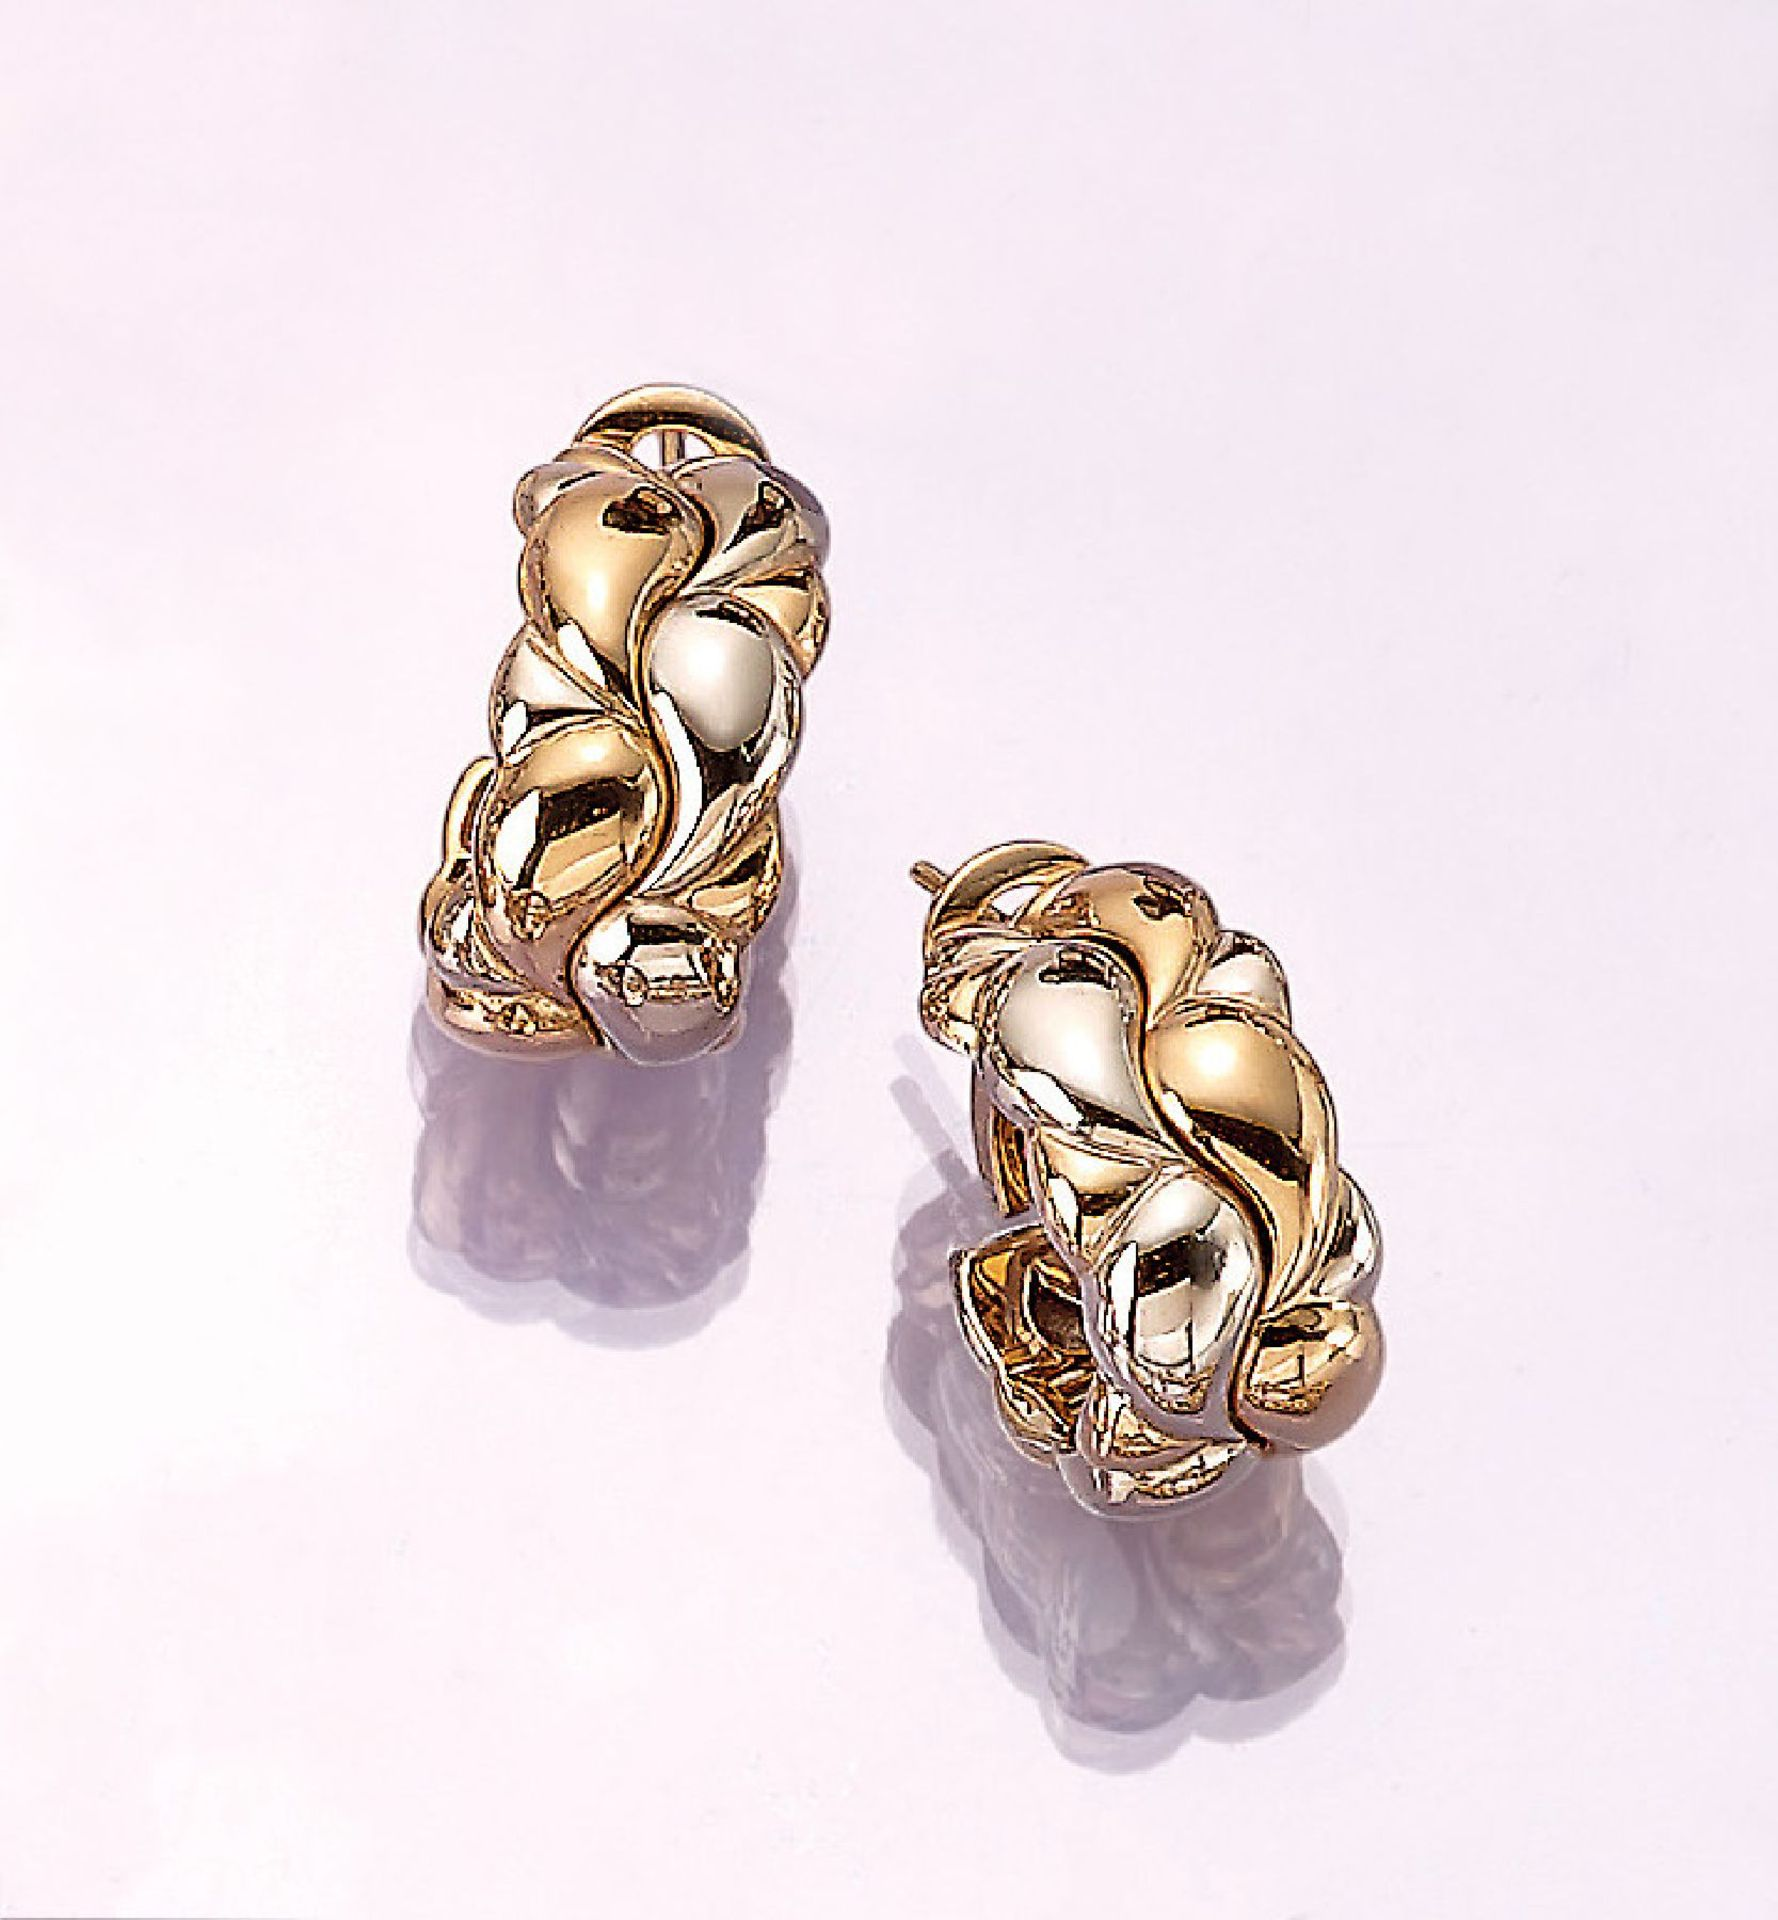 Los 31524 - Pair of 18 kt gold earrings CHOPARD CASMIR ,YG/WG 750/000, nice, heavy quality, approx. 22.8 g,